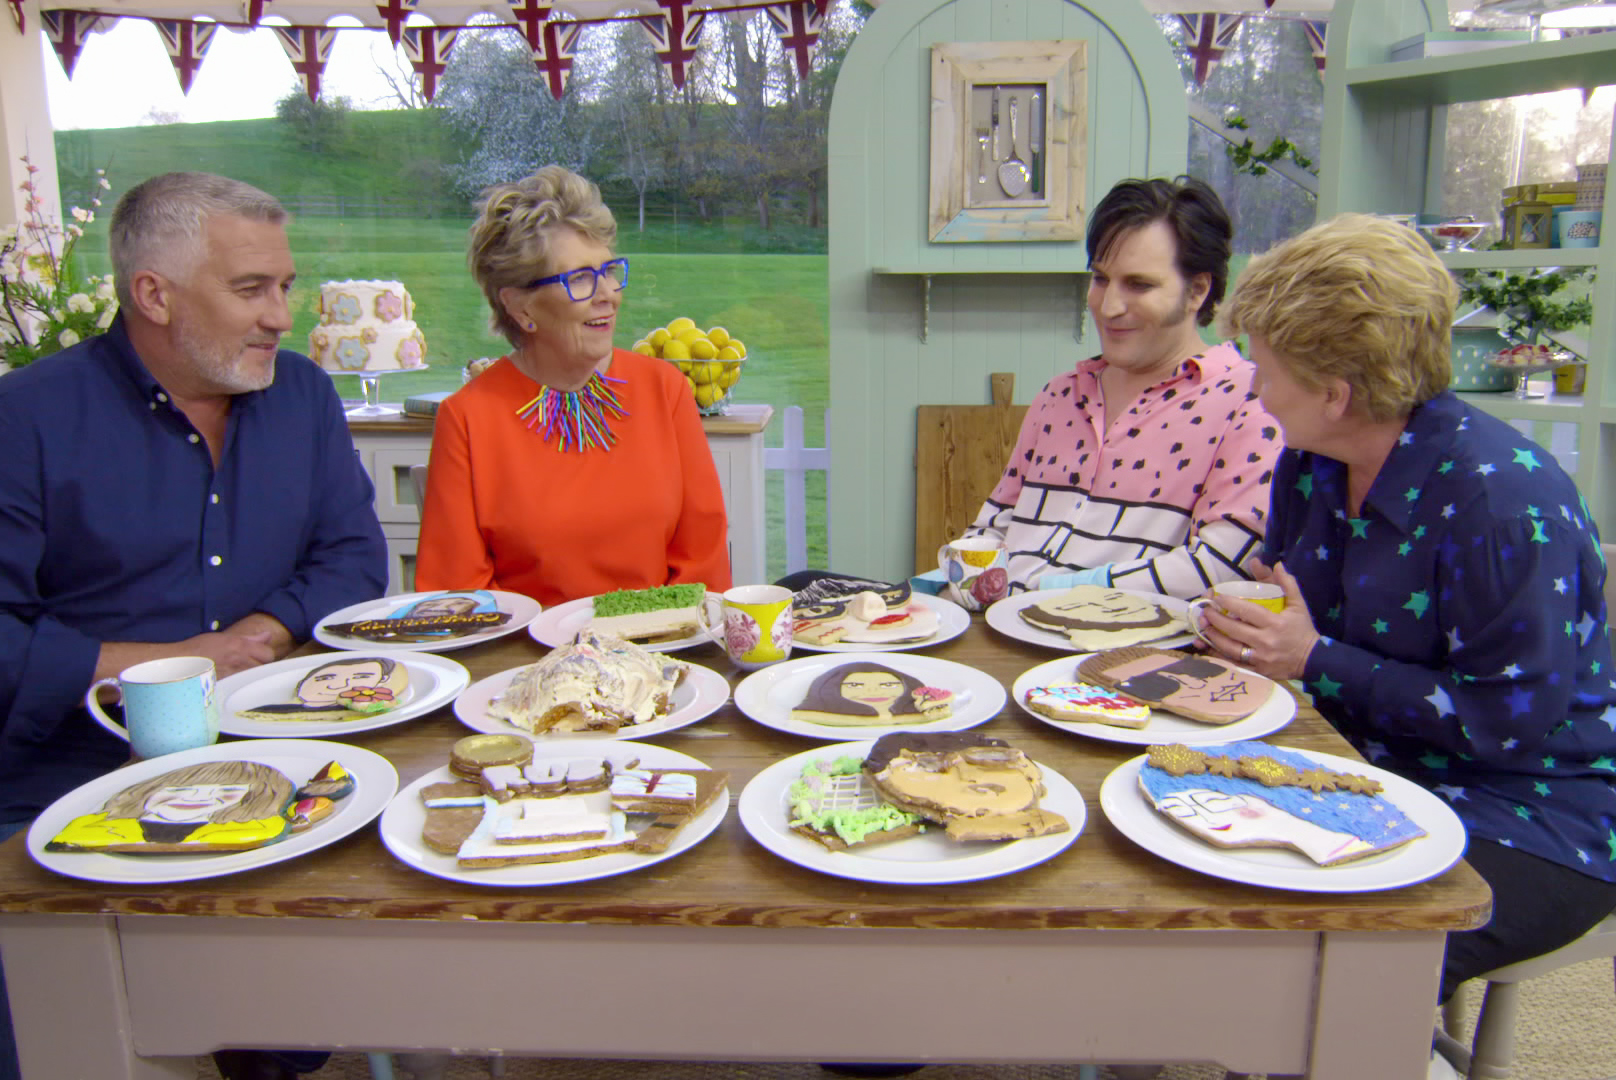 'Great British Baking Show' Leftovers Are Fed to Pigs, According to Noel Fielding